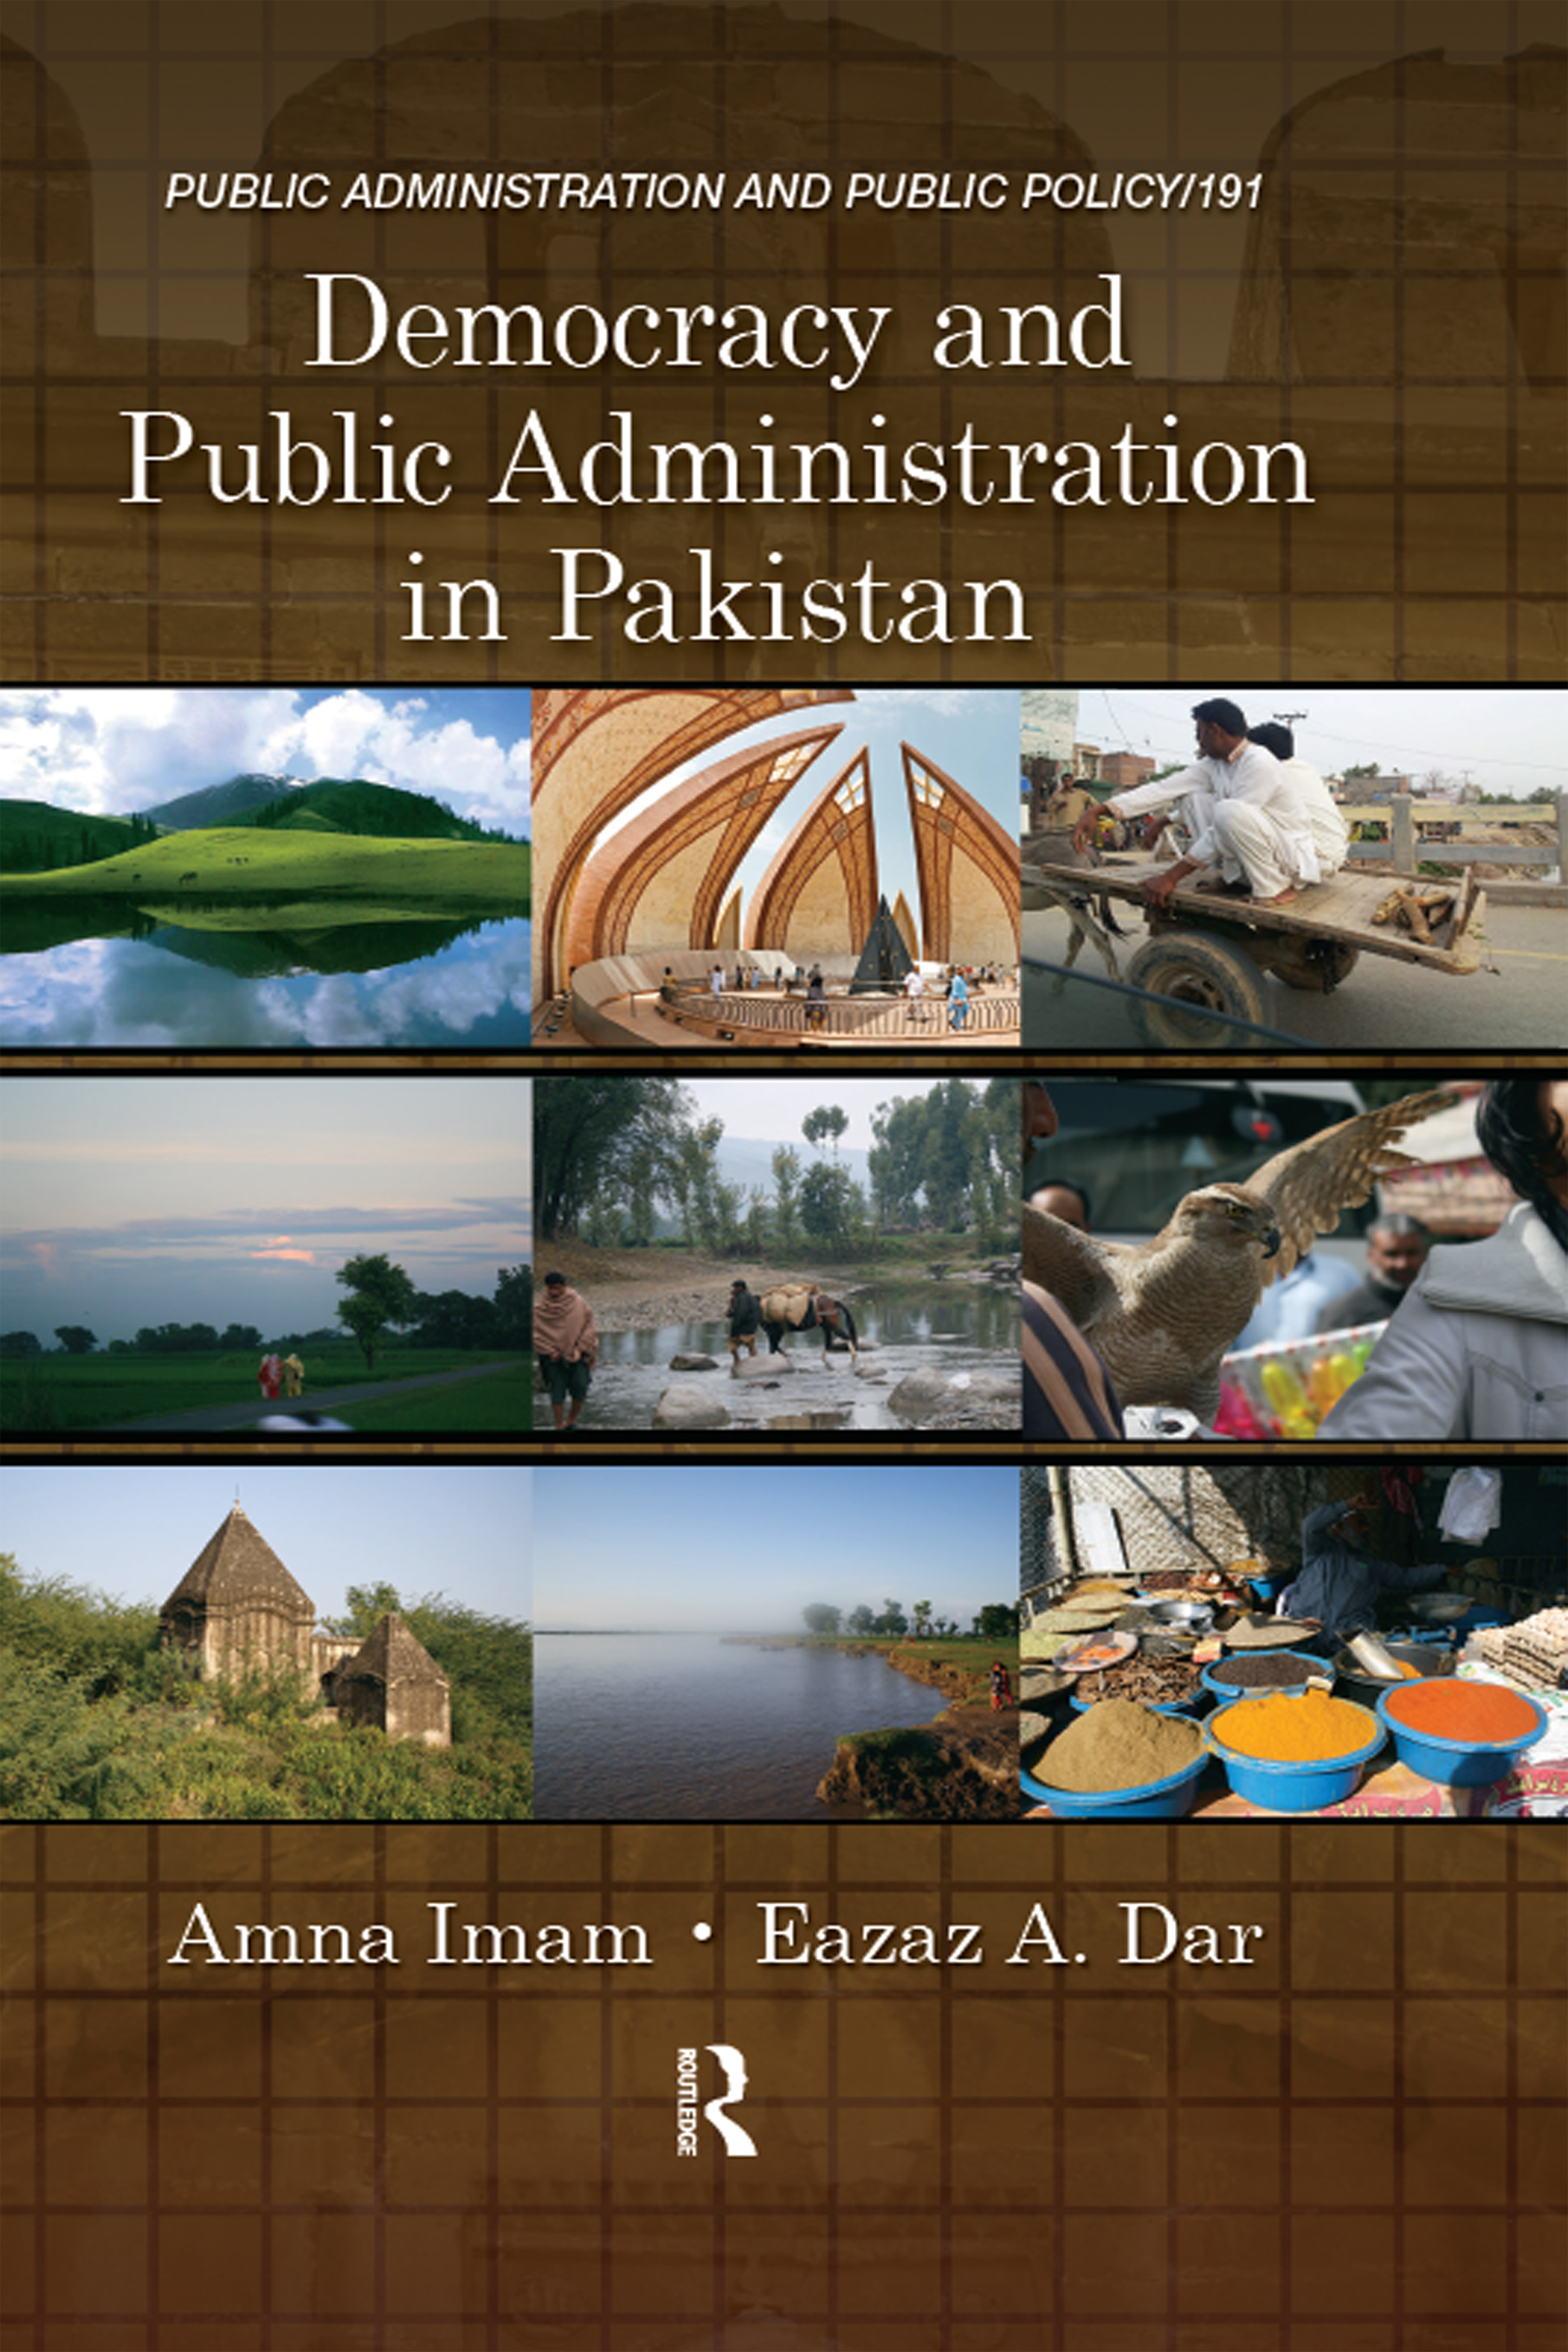 Democracy and Public Administration in Pakistan